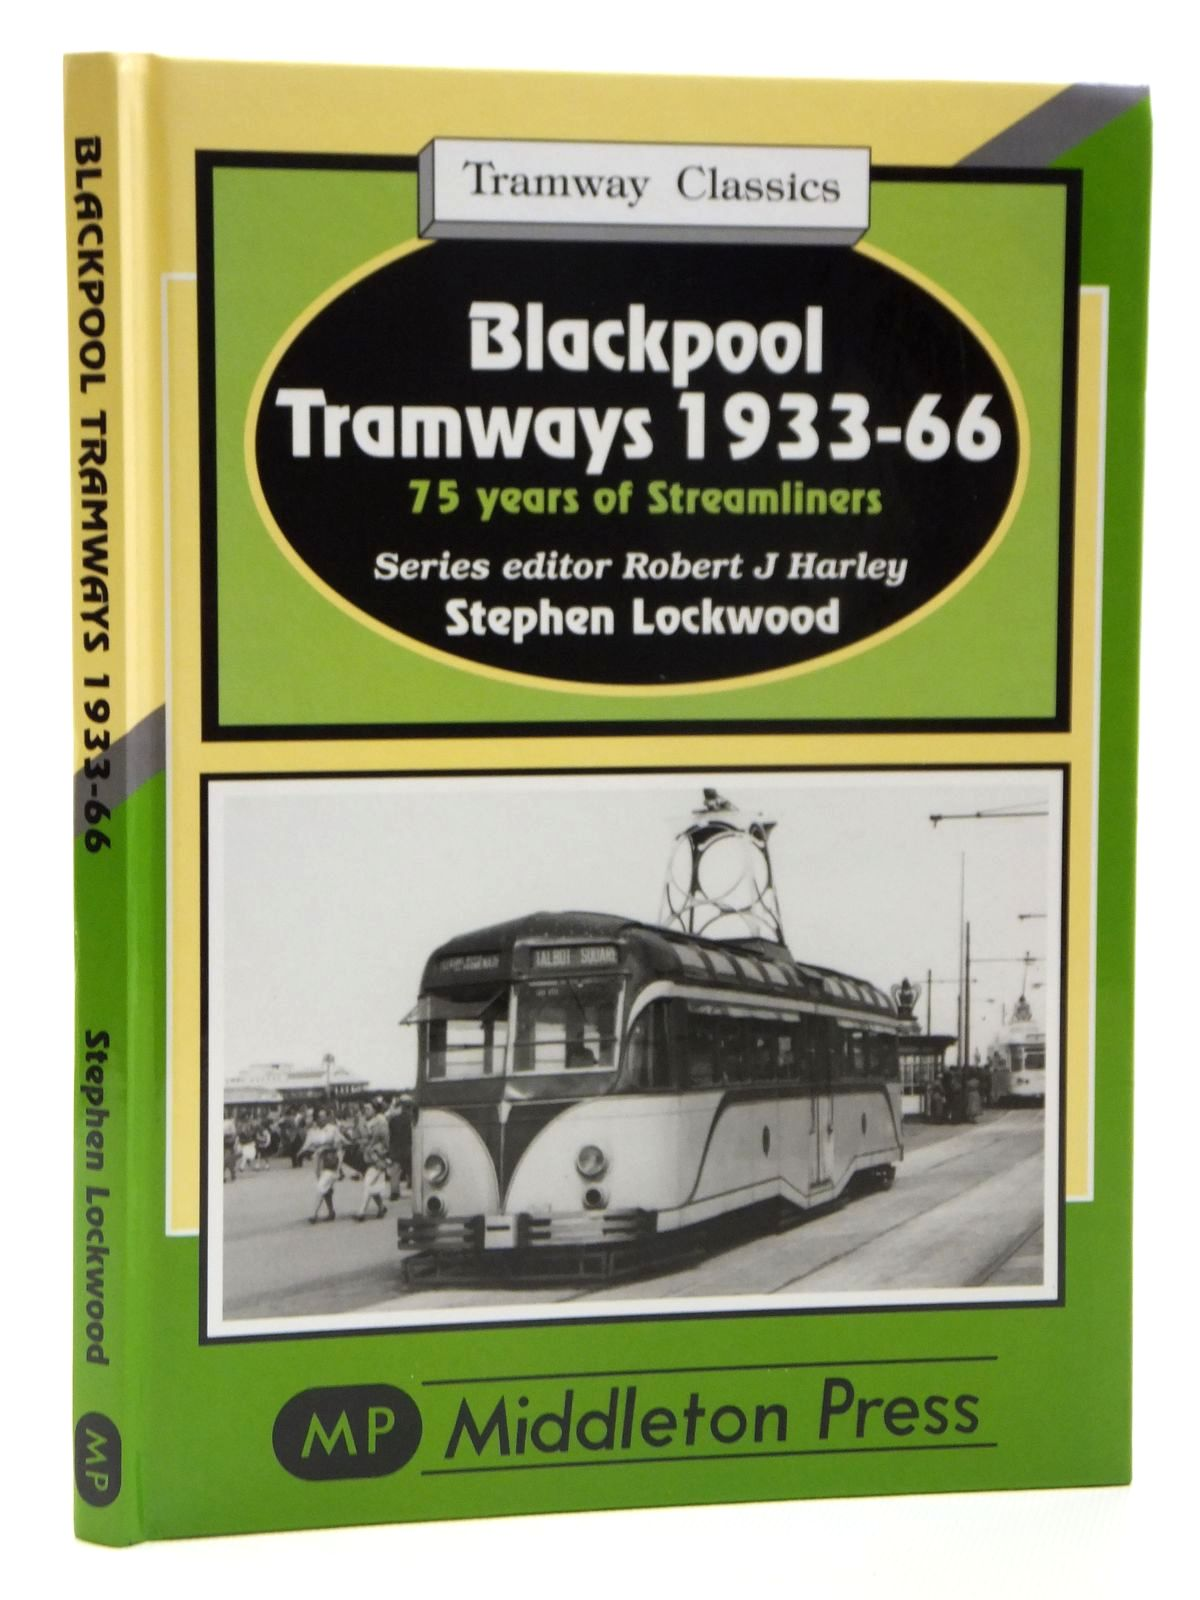 Photo of BLACKPOOL TRAMWAYS 1933-66 75 (TRAMWAY CLASSICS) written by Lockwood, Stephen published by Middleton Press (STOCK CODE: 1608159)  for sale by Stella & Rose's Books